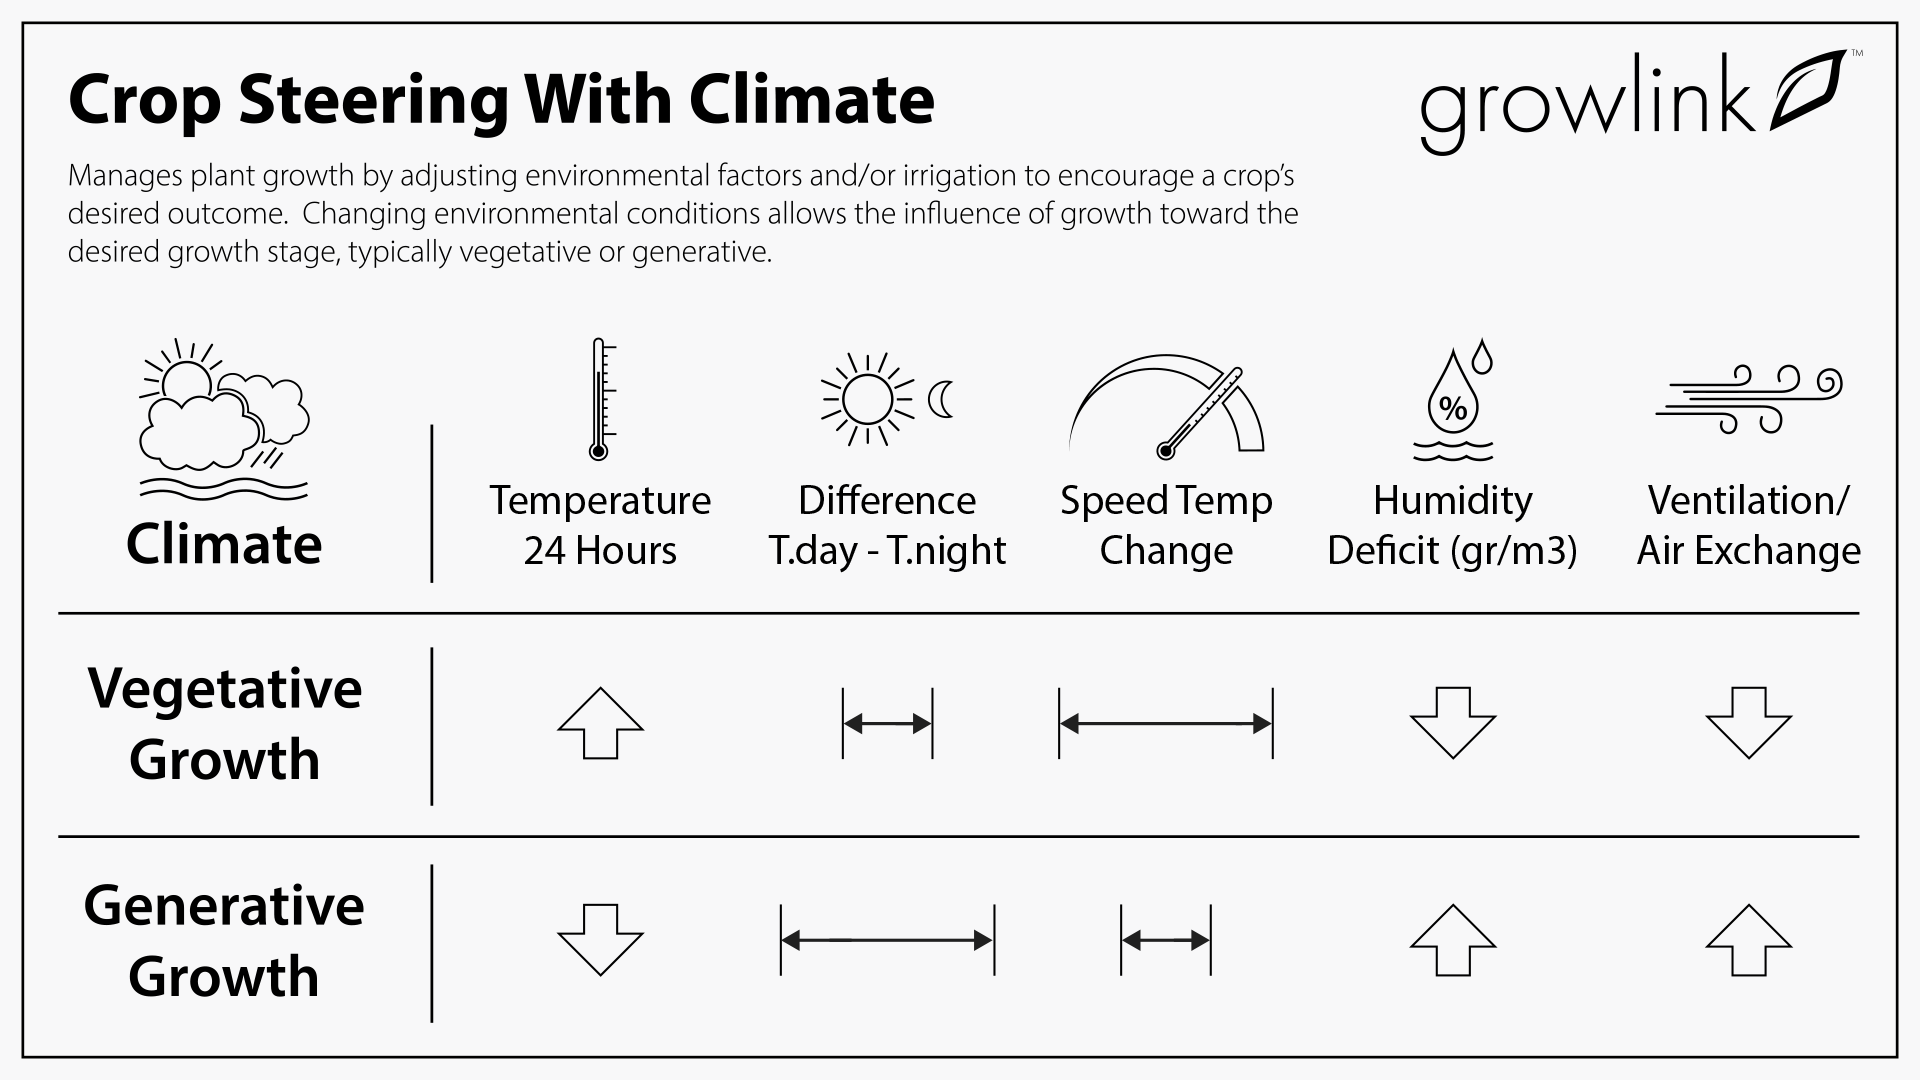 Growlink_Crop-Steering-Clmate-Infographic_030221